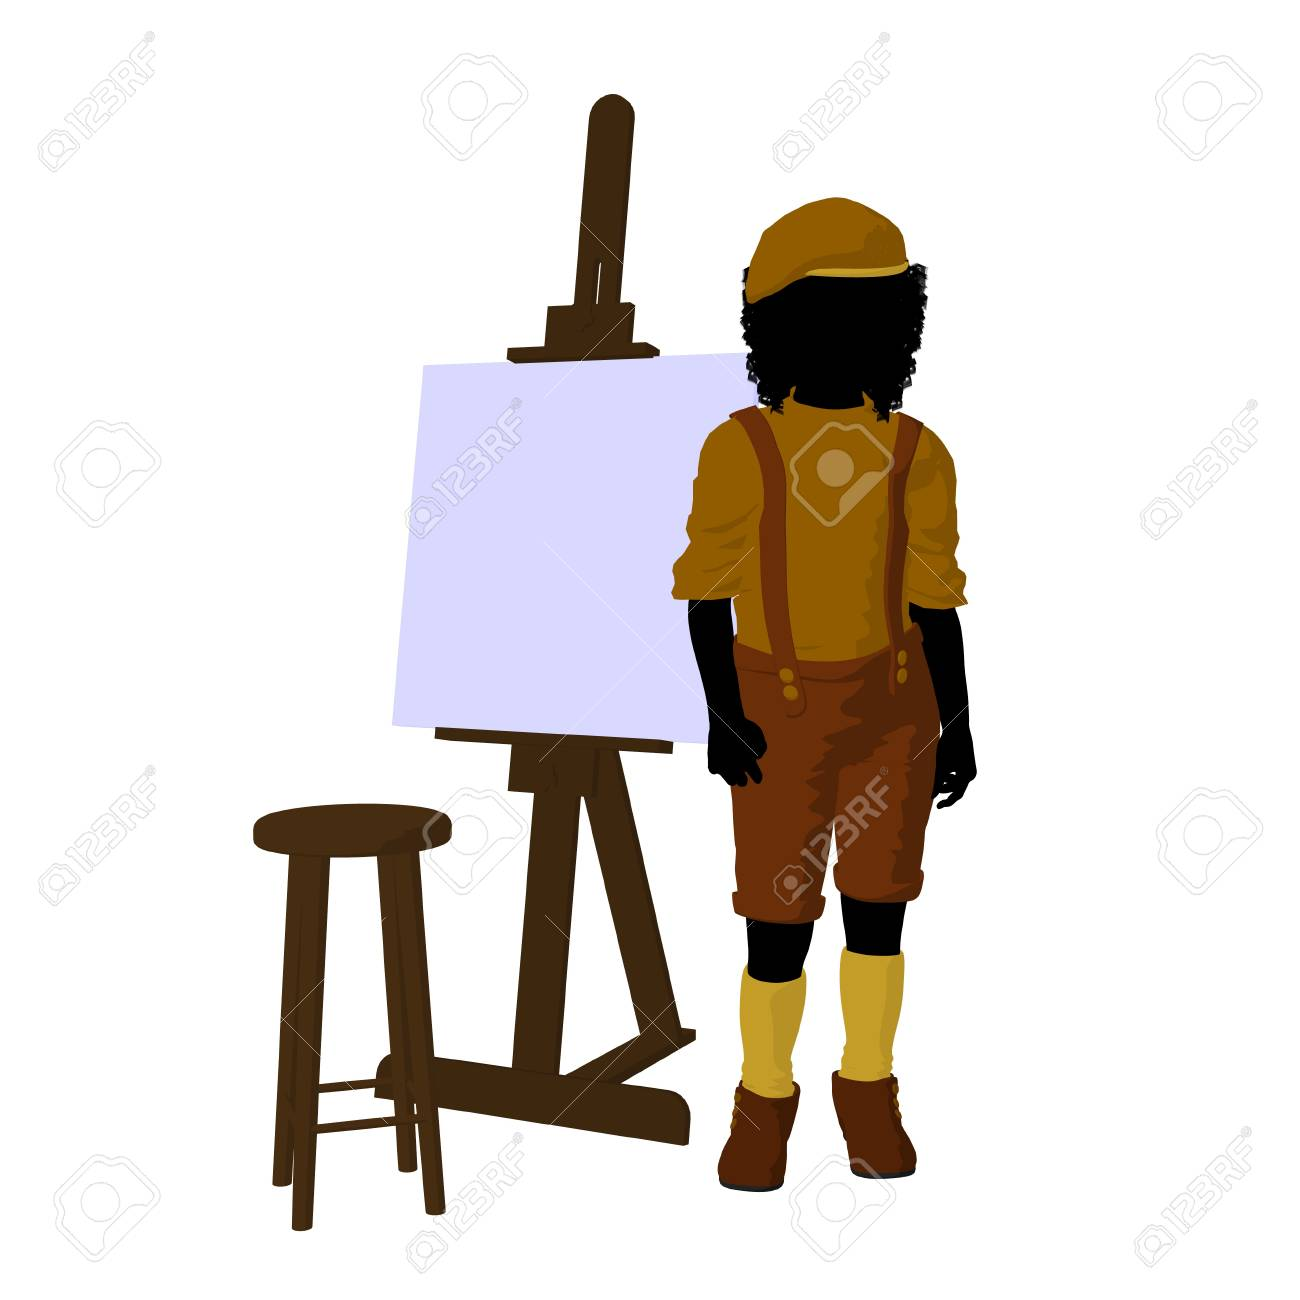 male tween african american artist with an easel and stool on